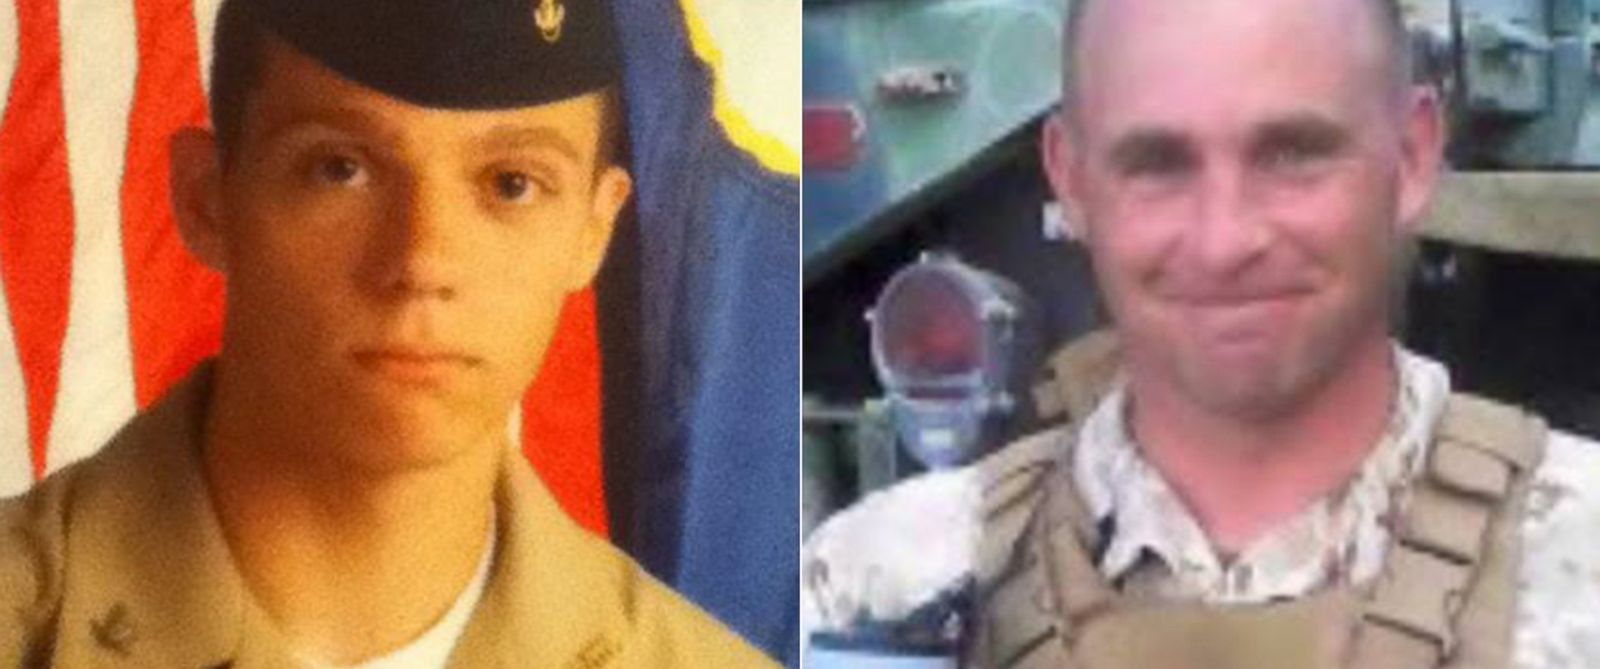 PHOTO: Skip Wells, left, and Thomas Sullivan, right, are seen in these undated photos. Both were killed in a shooting on July 16, 2015 in Chattanooga, Tenn.